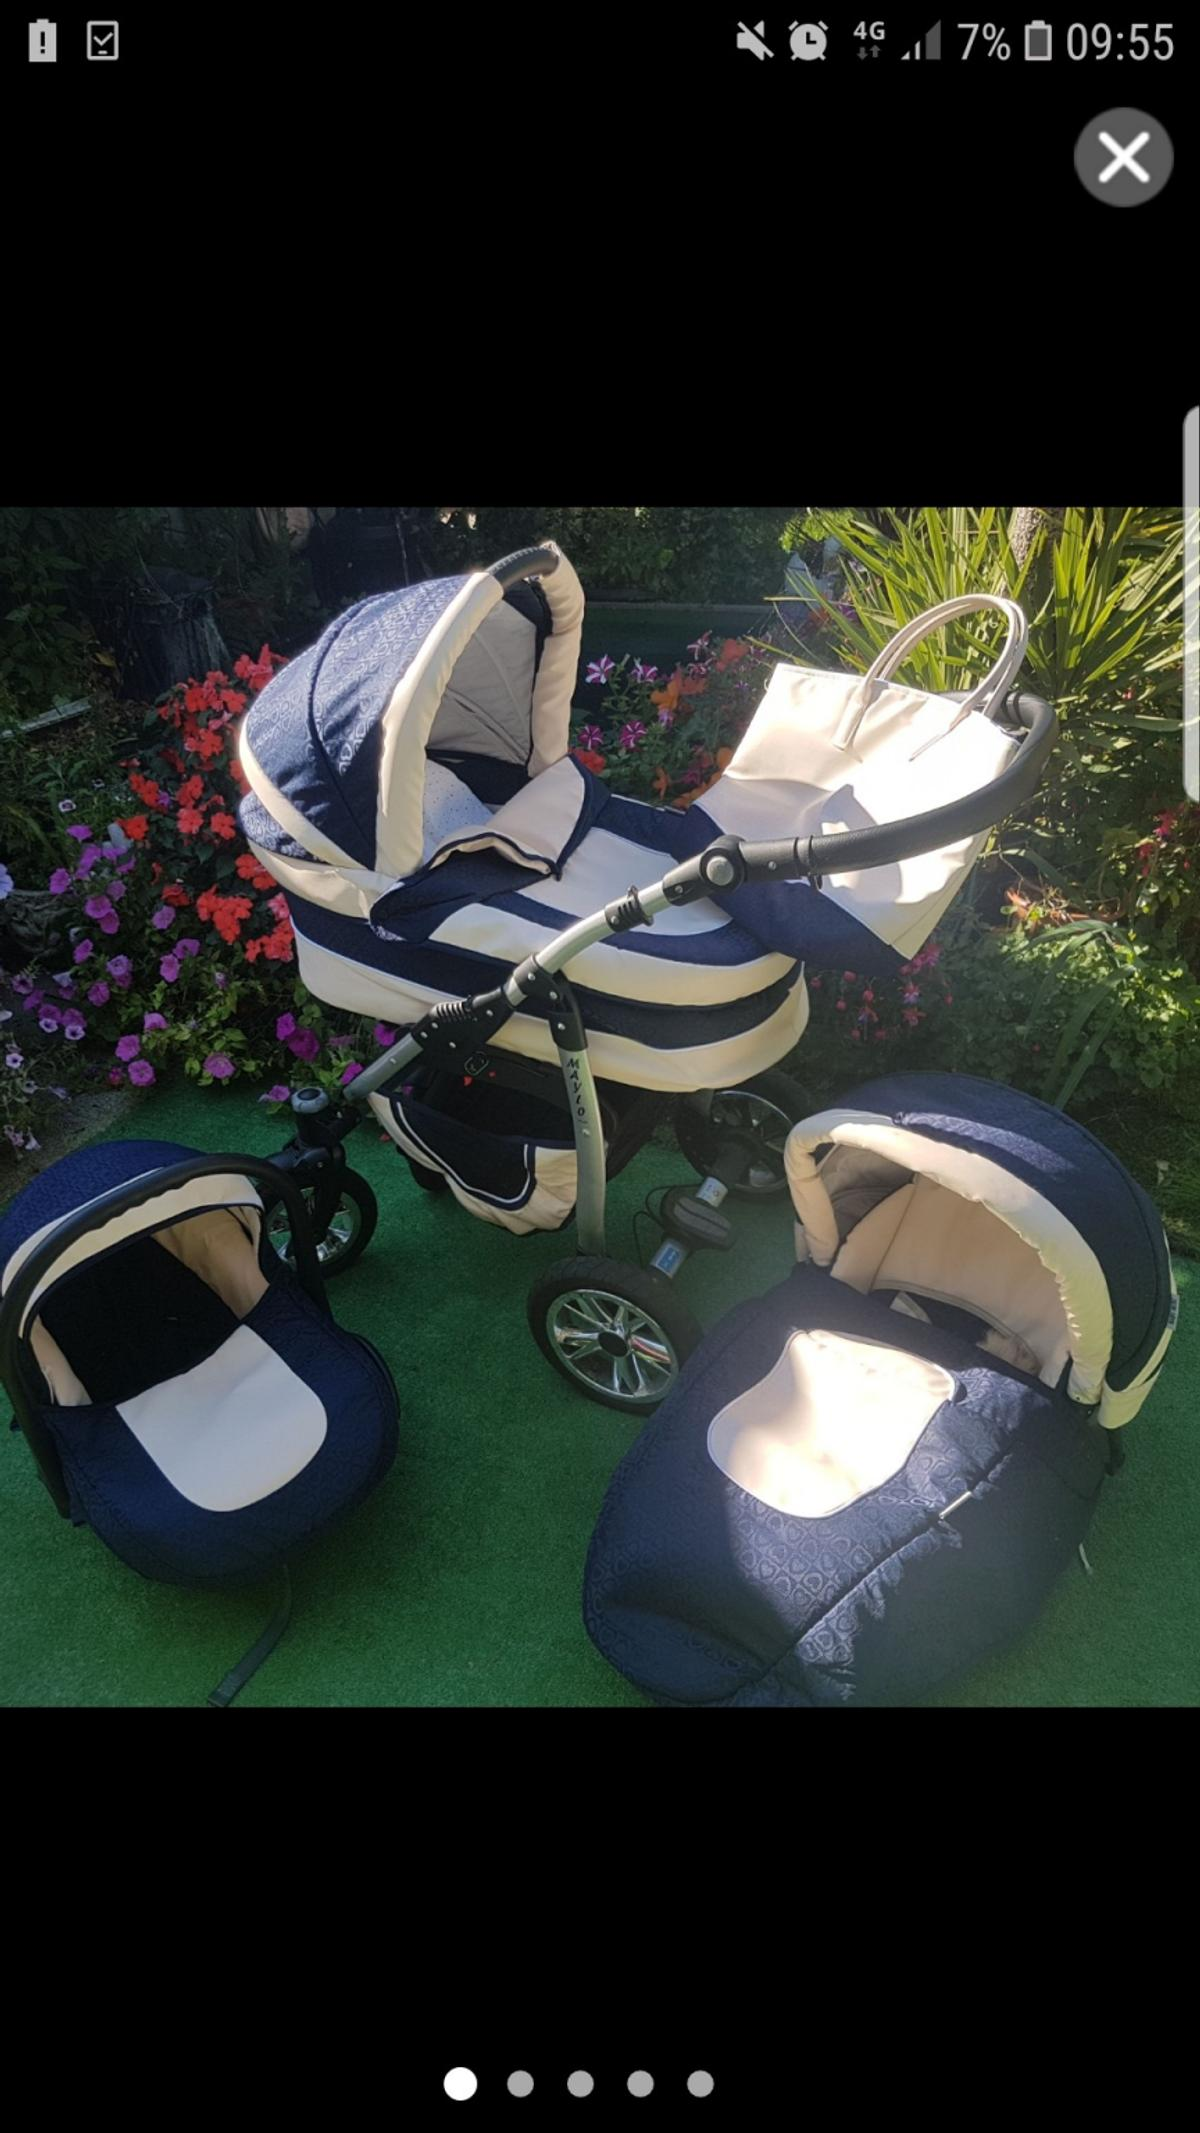 Wondrous Baby Pram Buggy Car Seat In Se16 London For 100 00 For Sale Gmtry Best Dining Table And Chair Ideas Images Gmtryco